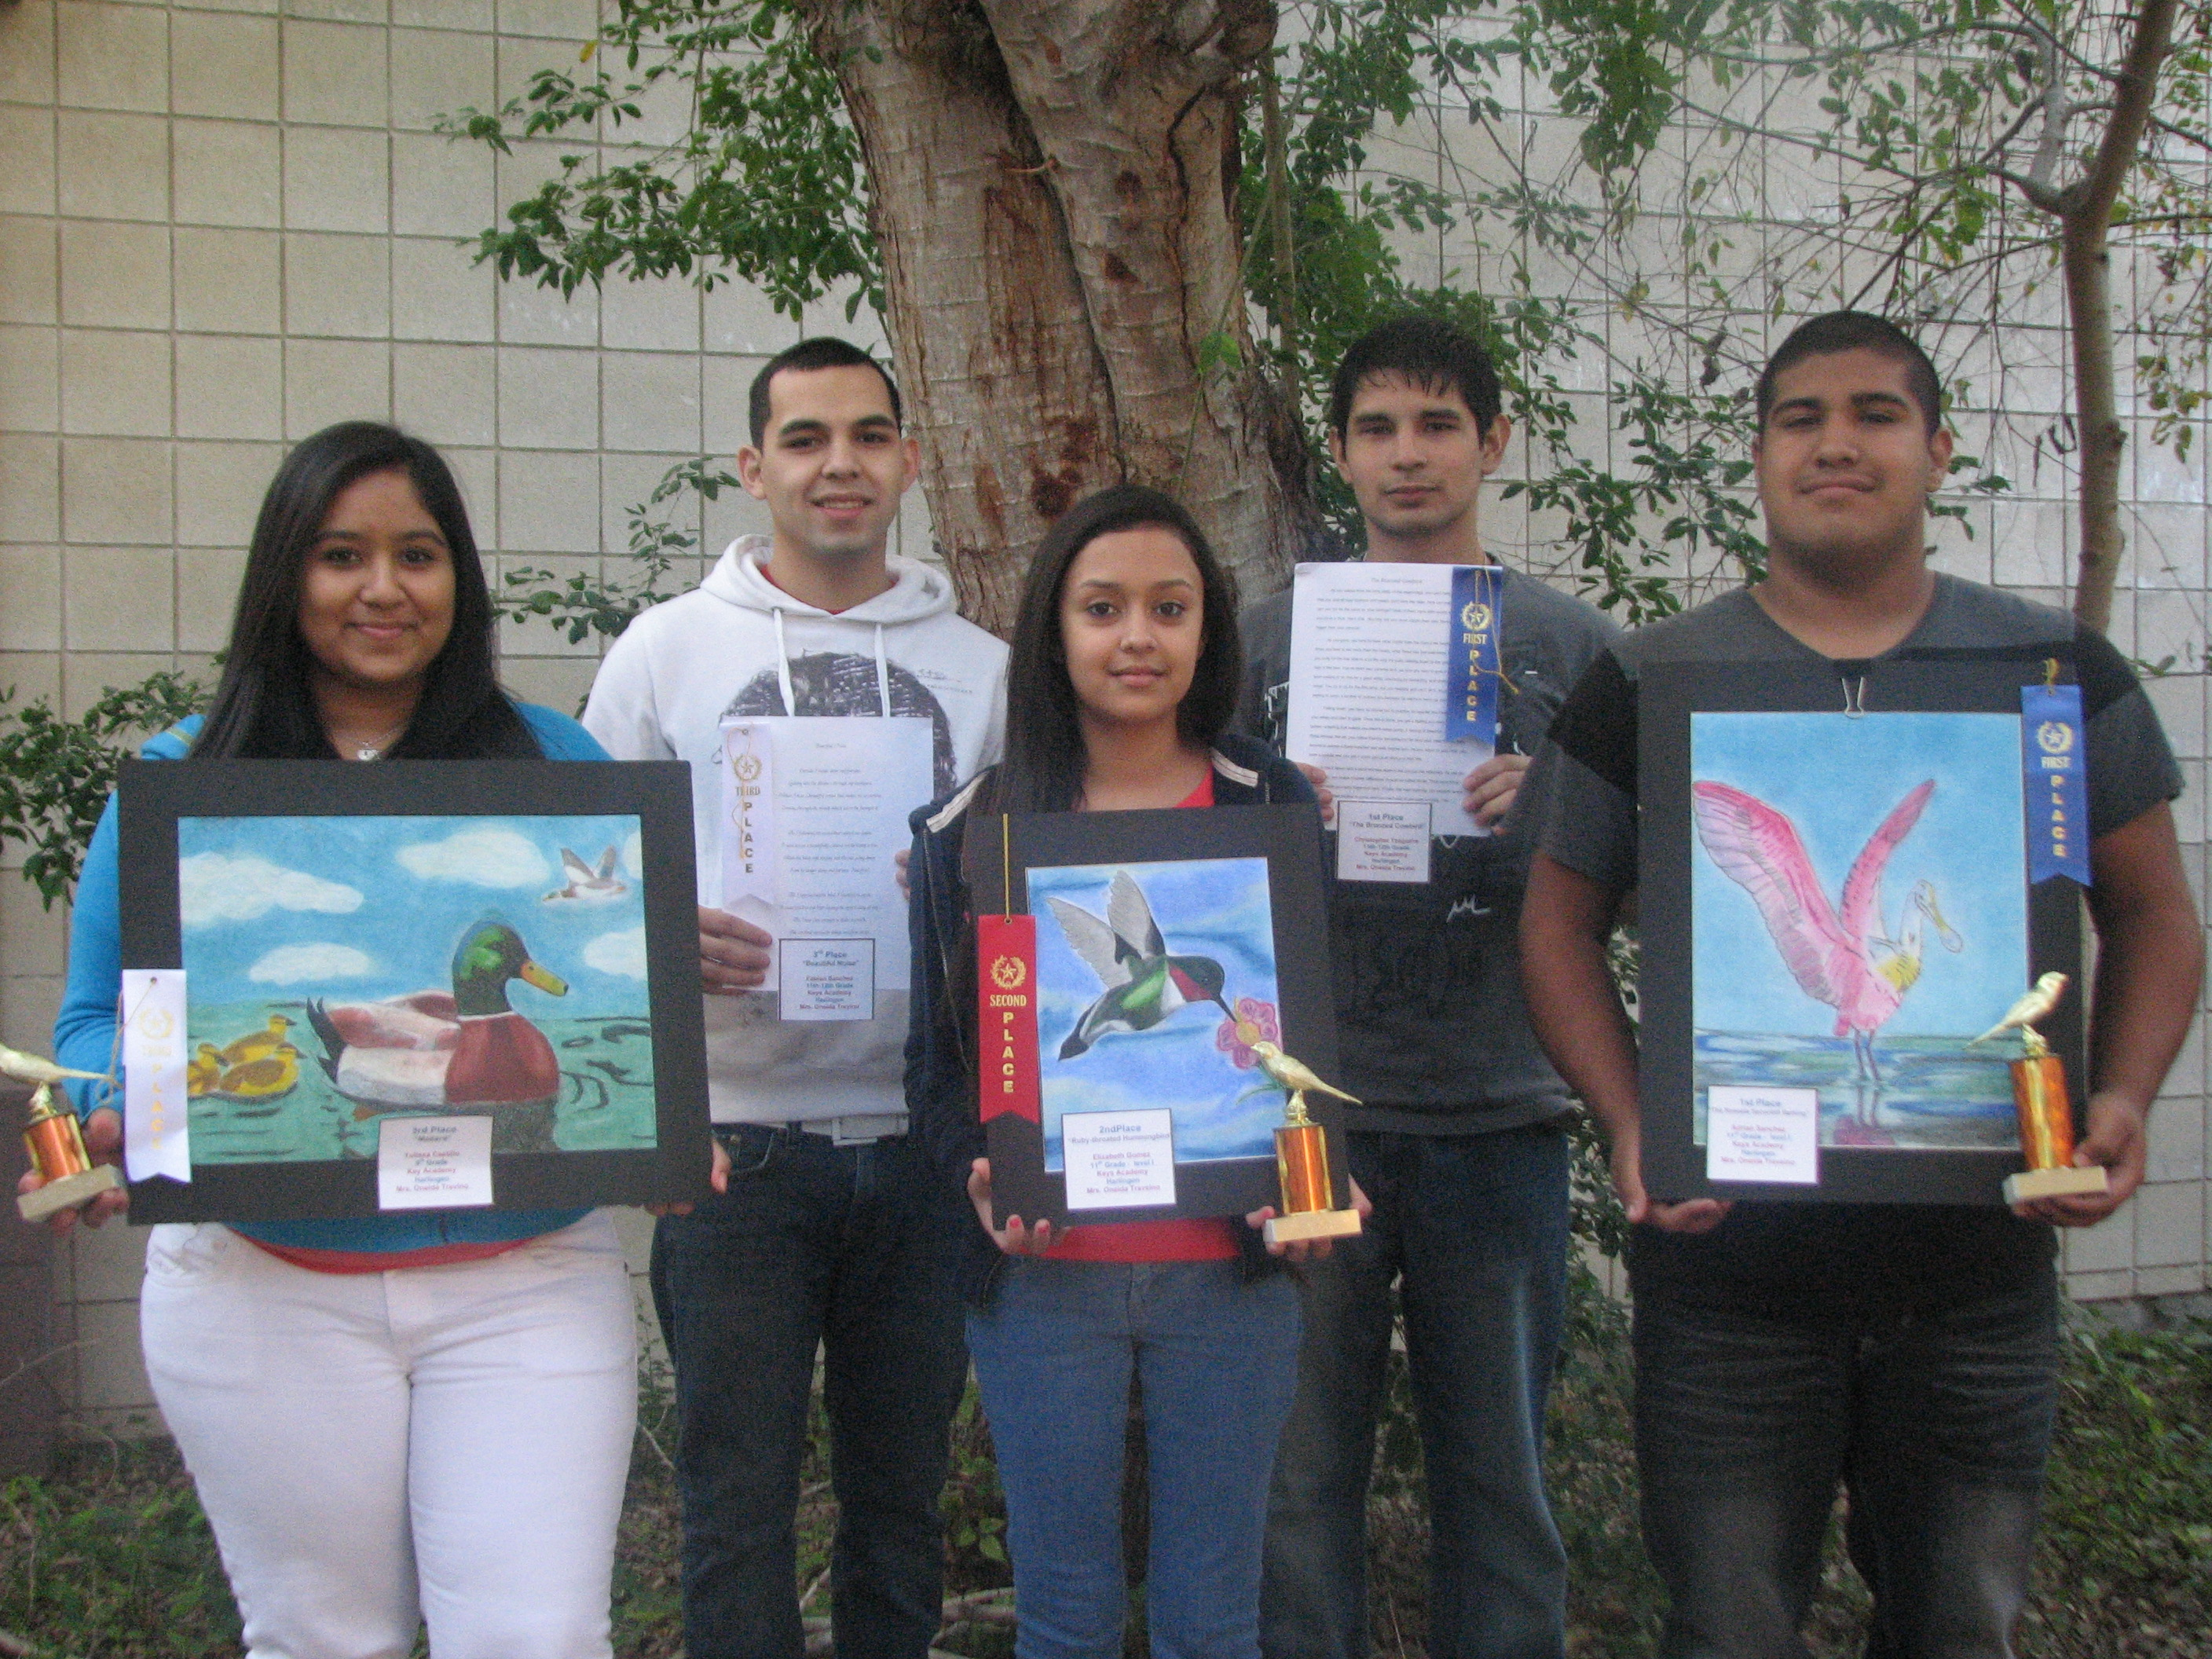 KEYS students take top honors at RGV Birding Festival